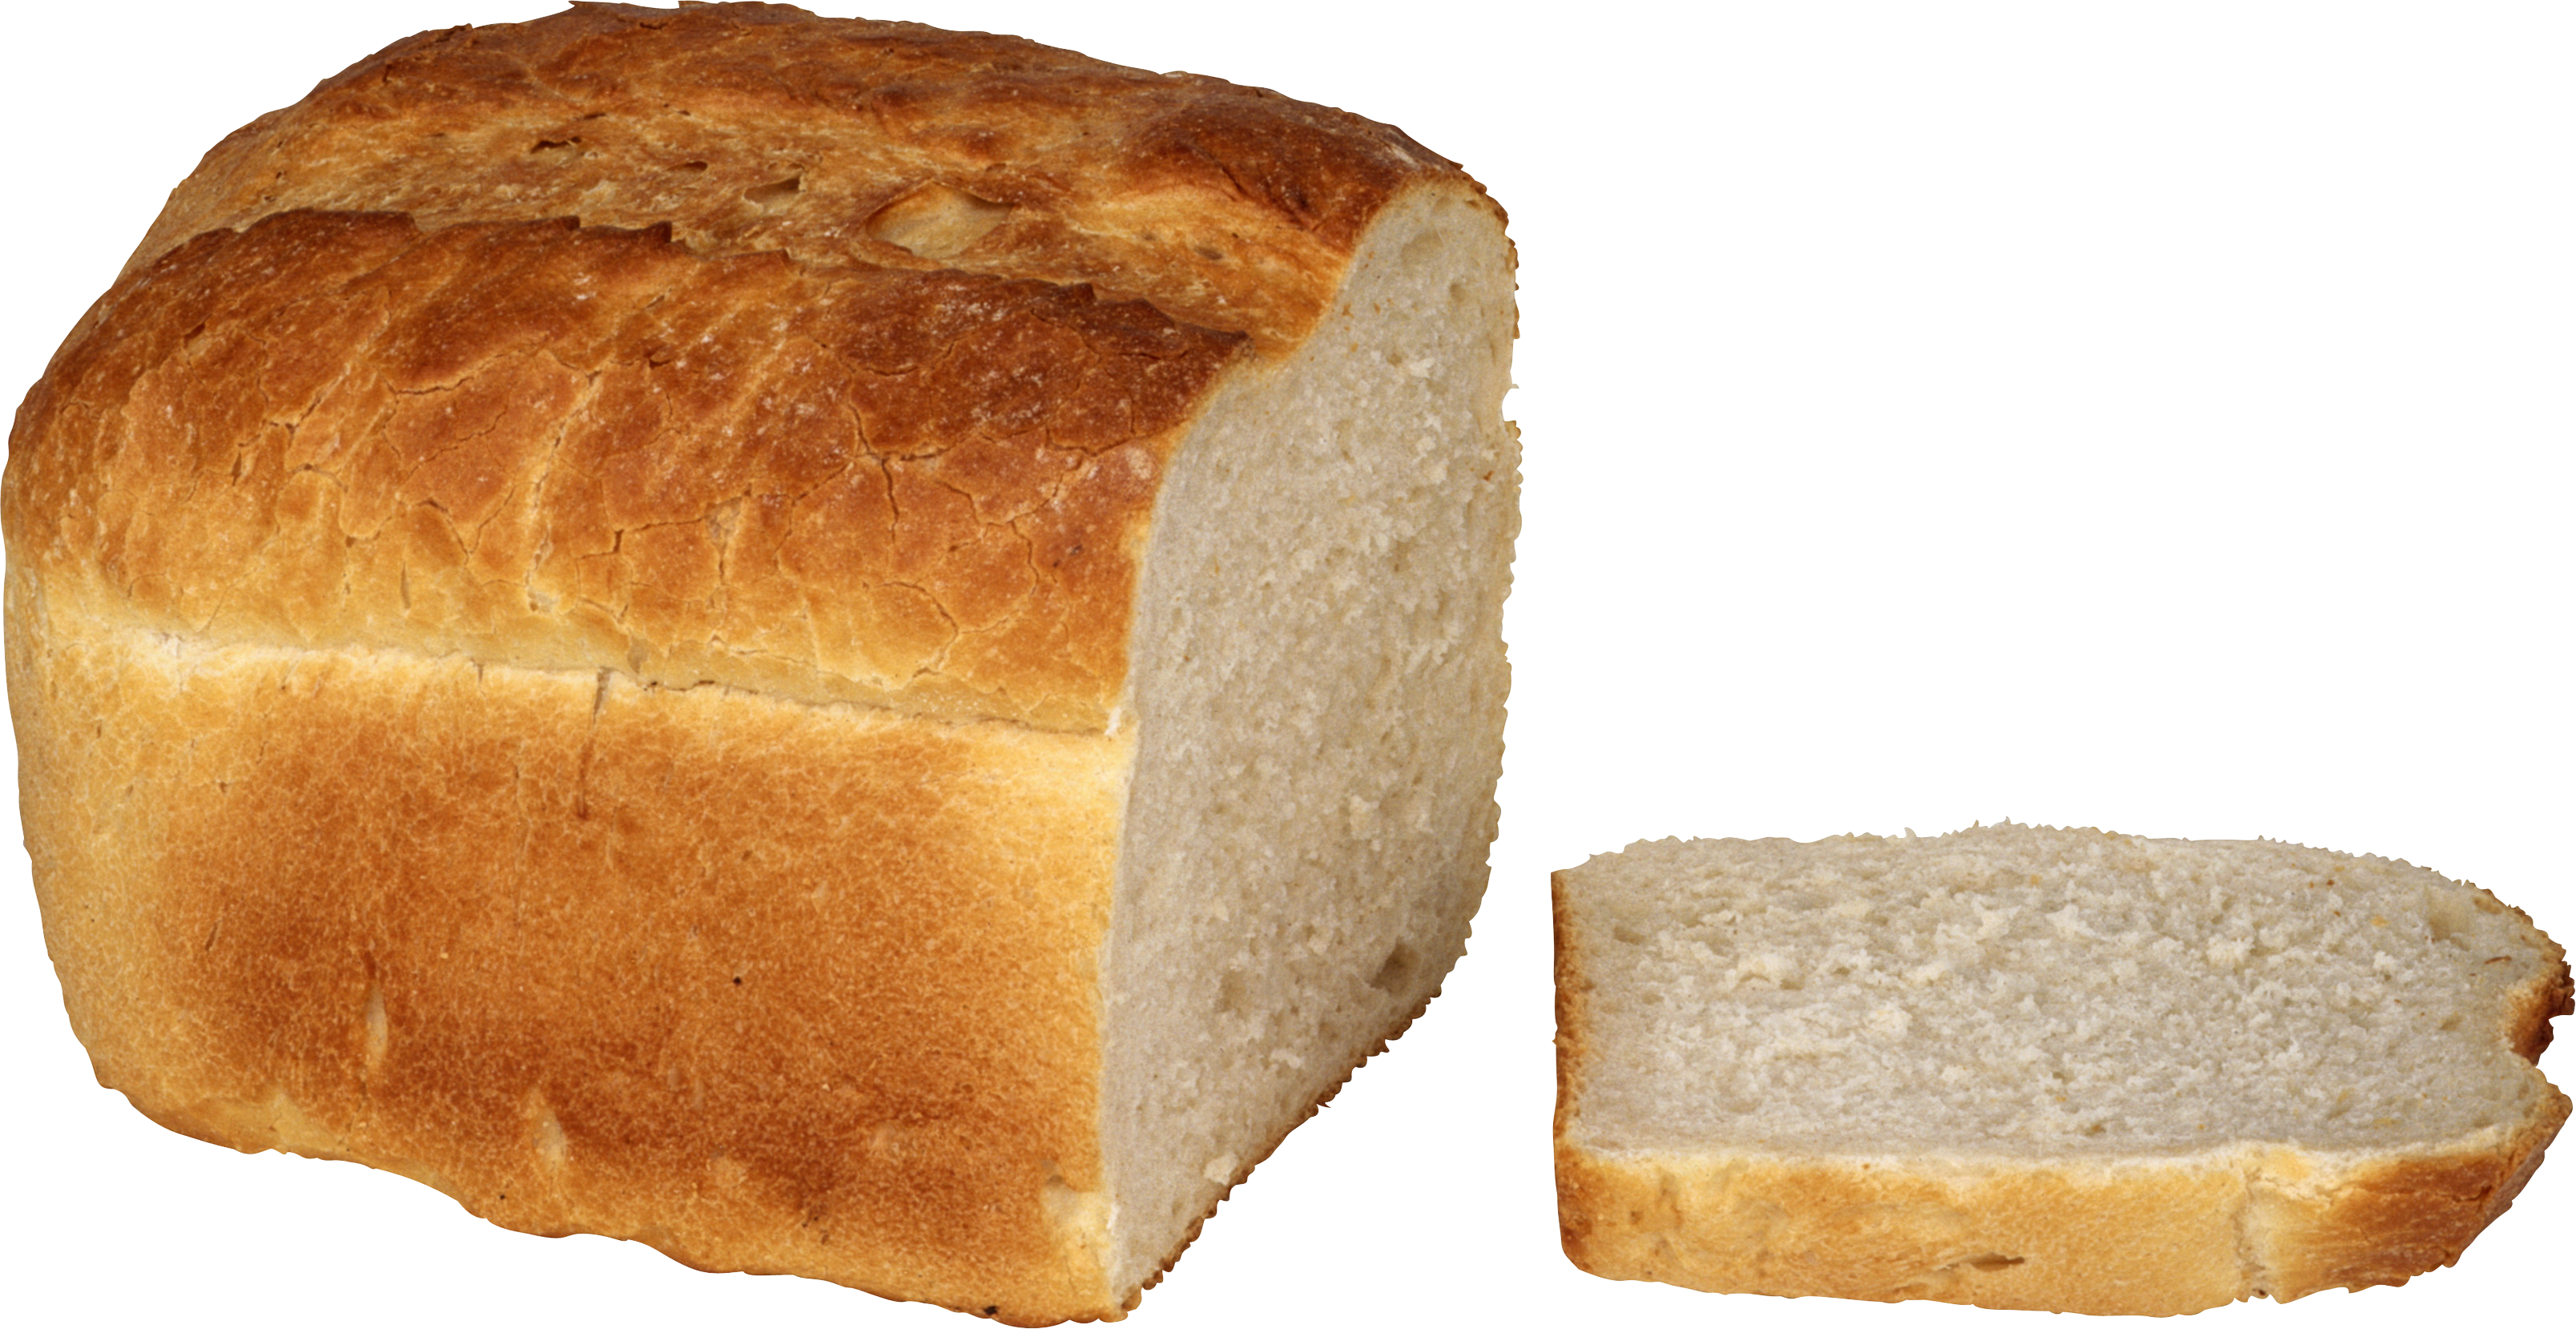 Bread Transparent Image Nutrition For Runners Low Carb Bread Low Carb Recipes